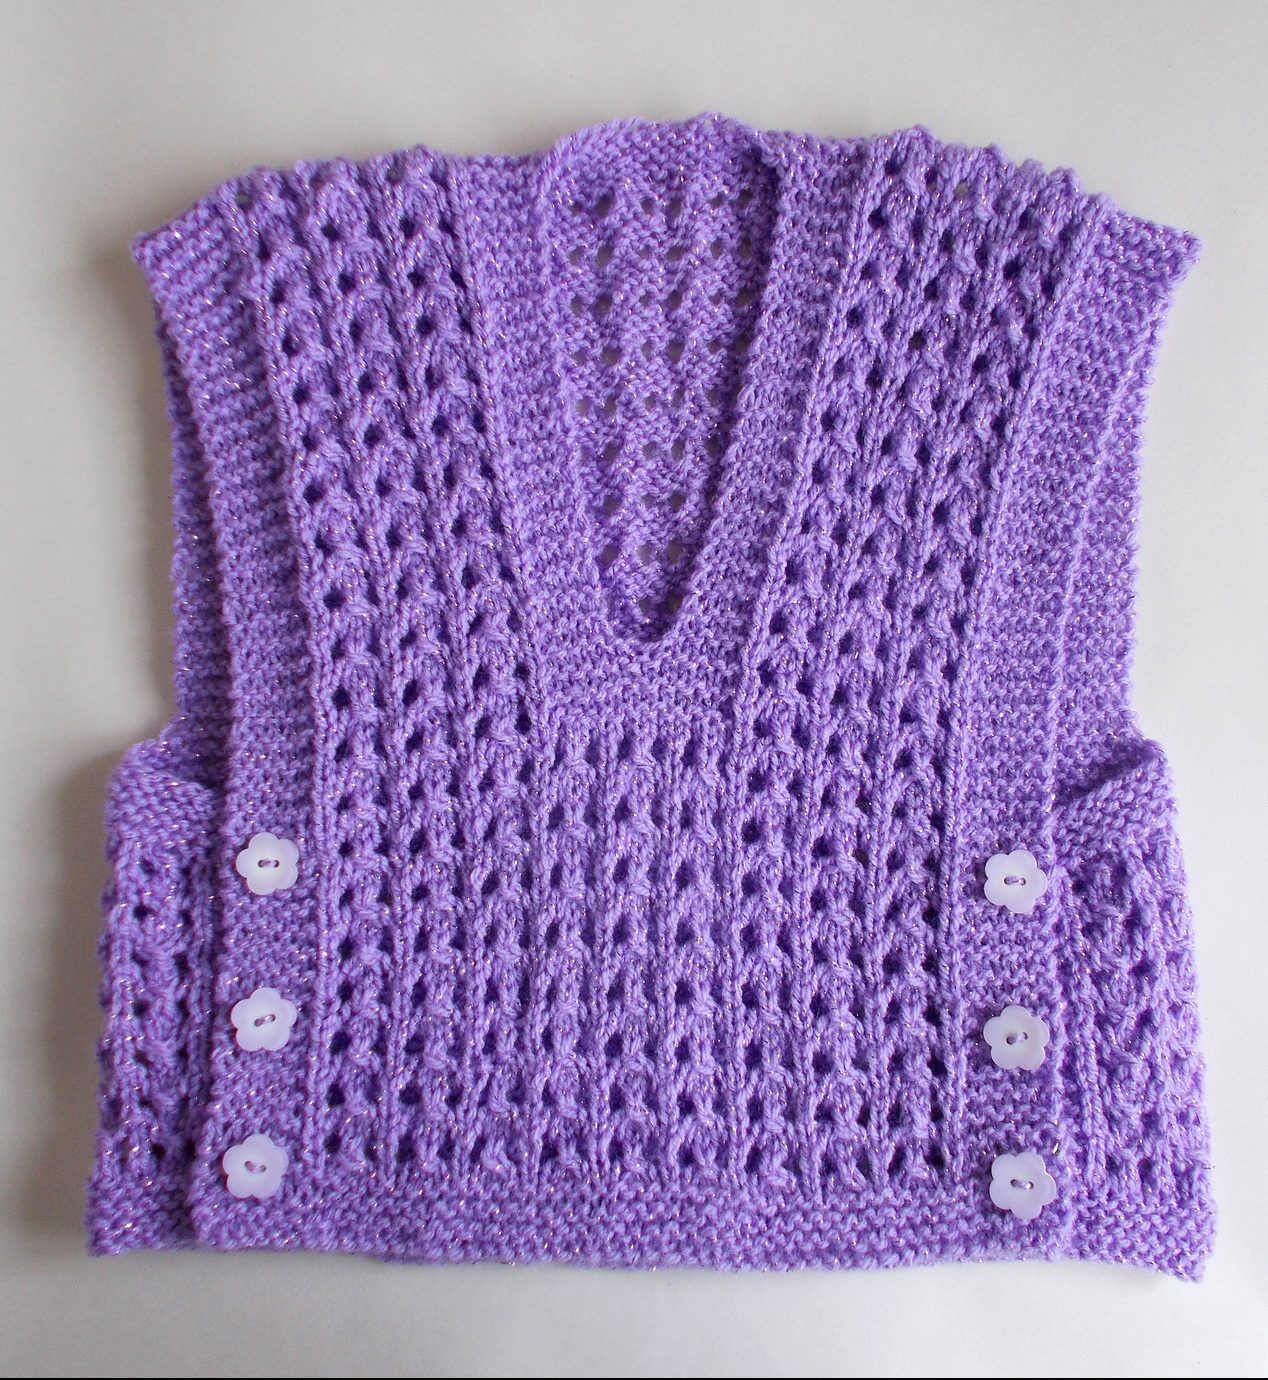 Inspirational Vests for Babies and Children Knitting Patterns Knitted Vest Patterns Of Amazing 50 Models Knitted Vest Patterns